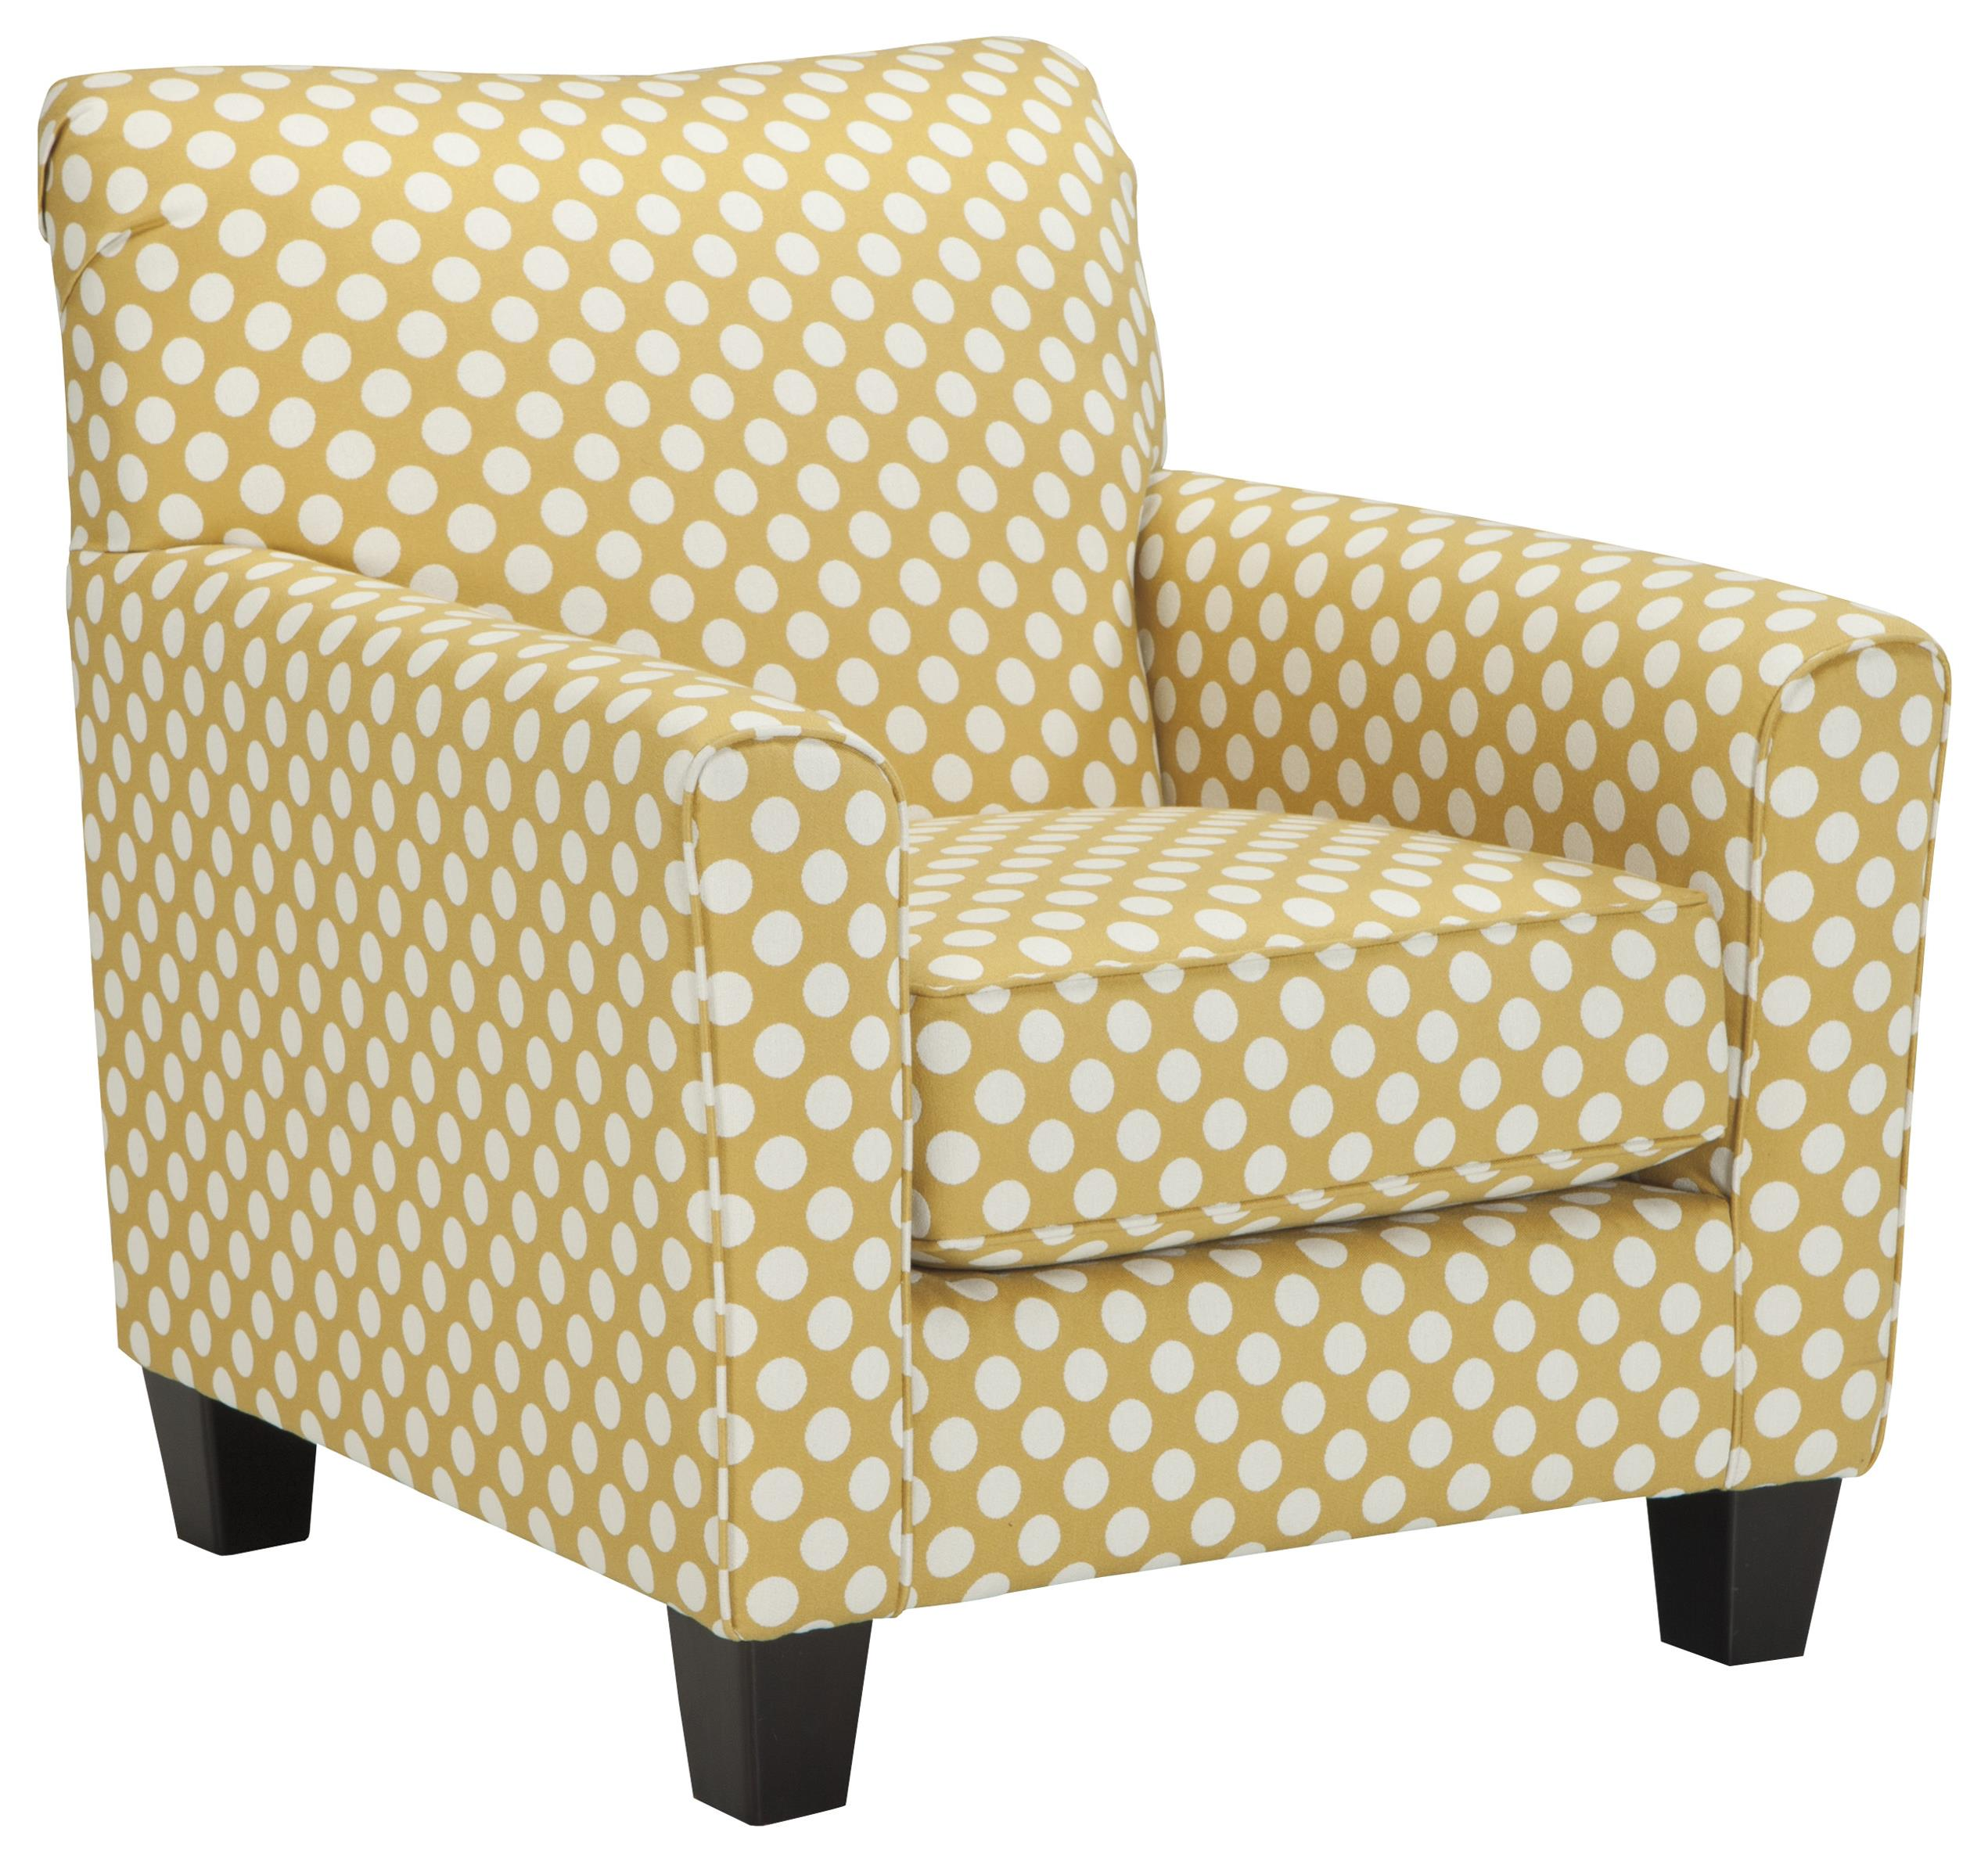 Accent Chair In Yellow Fabric With White Polka Dots